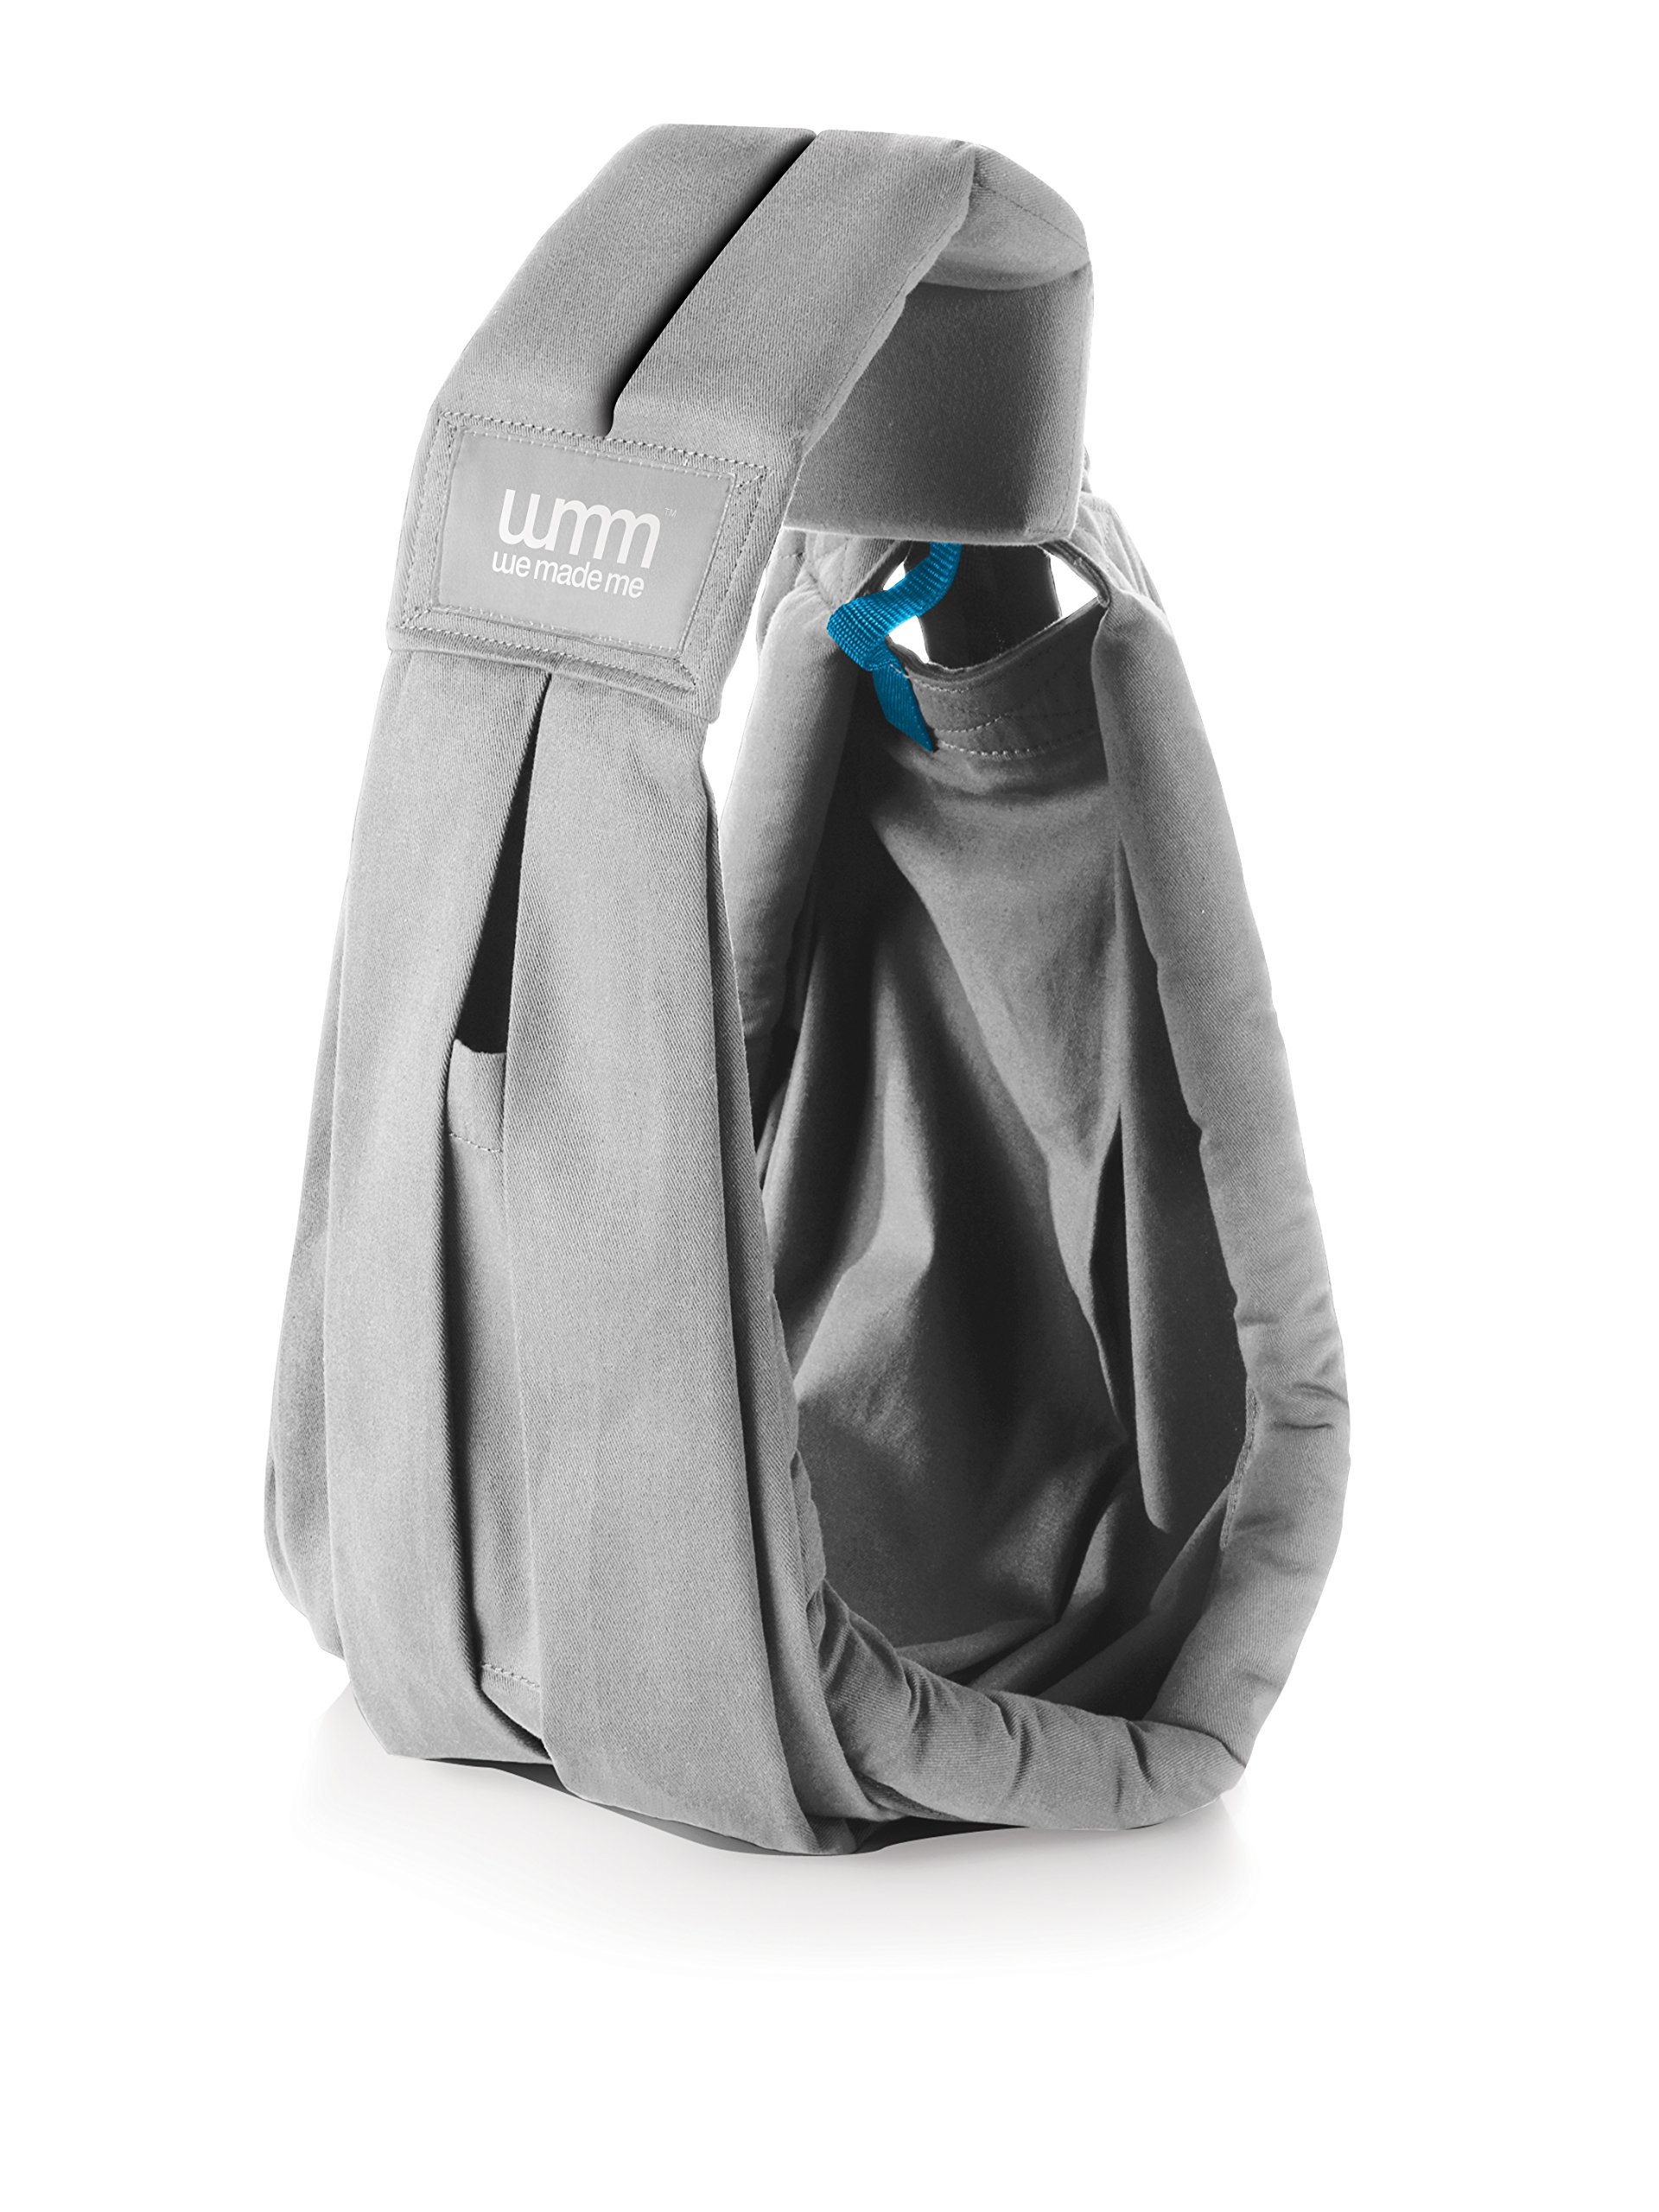 We Made Me Soohu Sling Dolphin Grey We Made Me Designed to carry babies and toddlers from birth to 2 years+ (3.5-15kg) Five different carrying positions including two perfect for discreet breastfeeding Handmade with the highest quality cotton, machine washable at 40 degrees 1